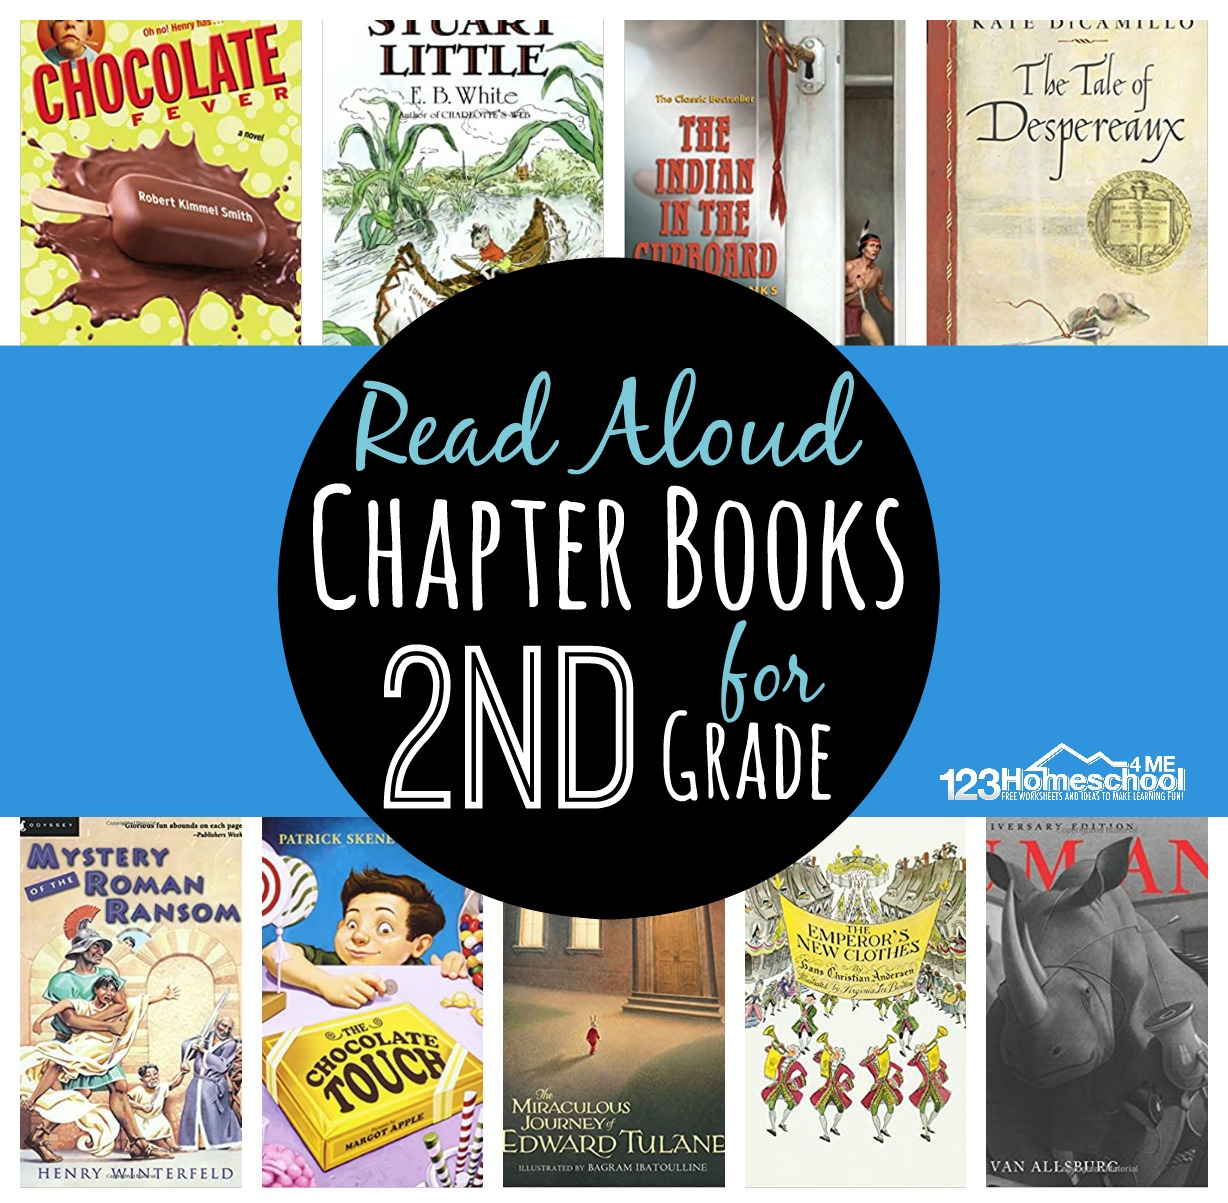 Read Aloud Chapter Books For 2nd Grade Best short read aloud books for 2nd